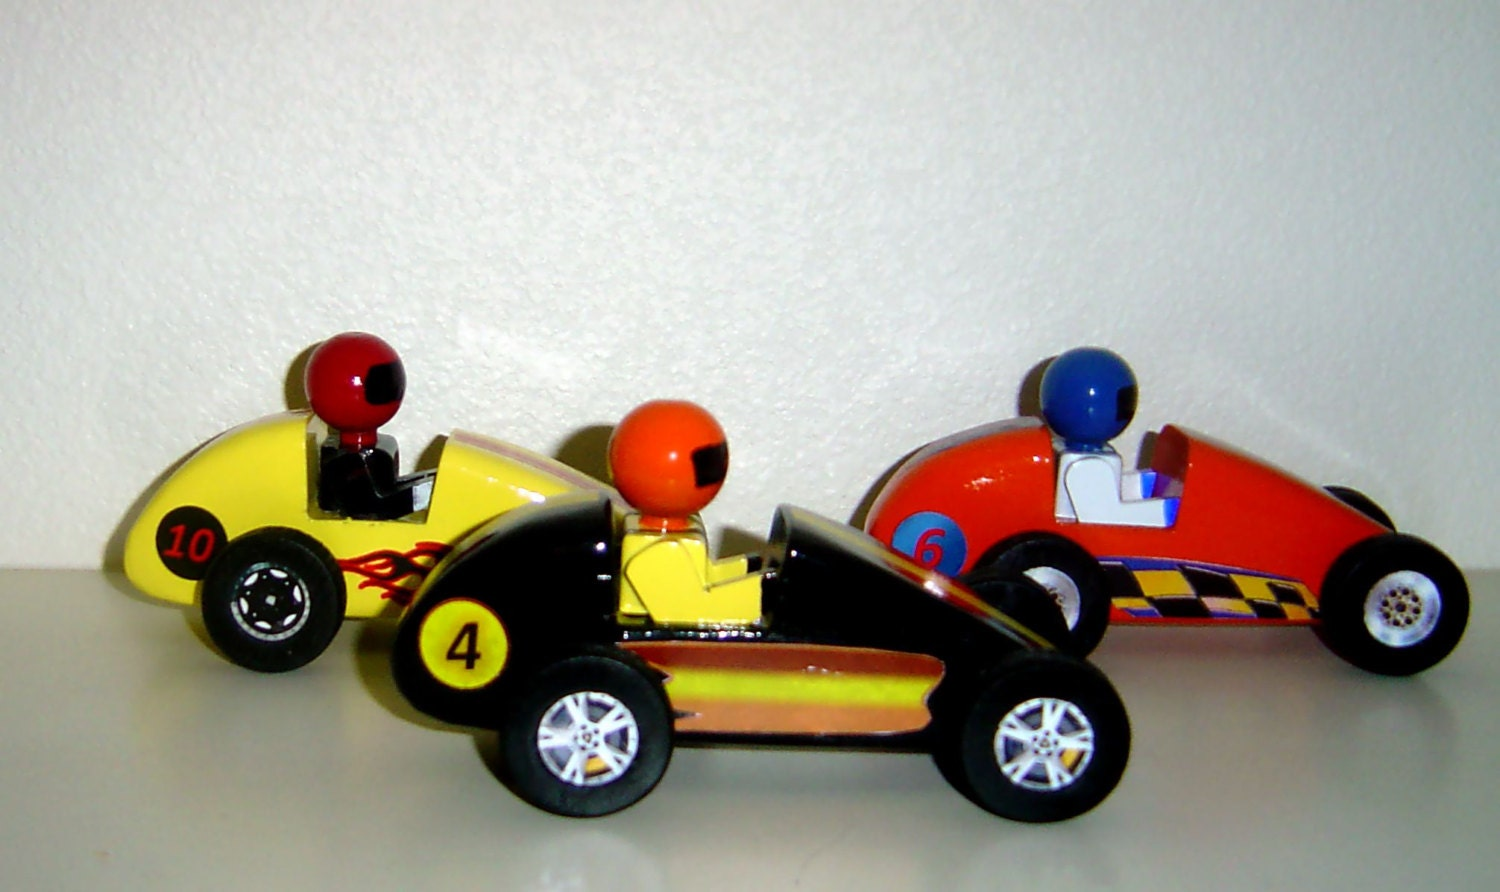 Toy Race Cars : Three wooden toy race cars